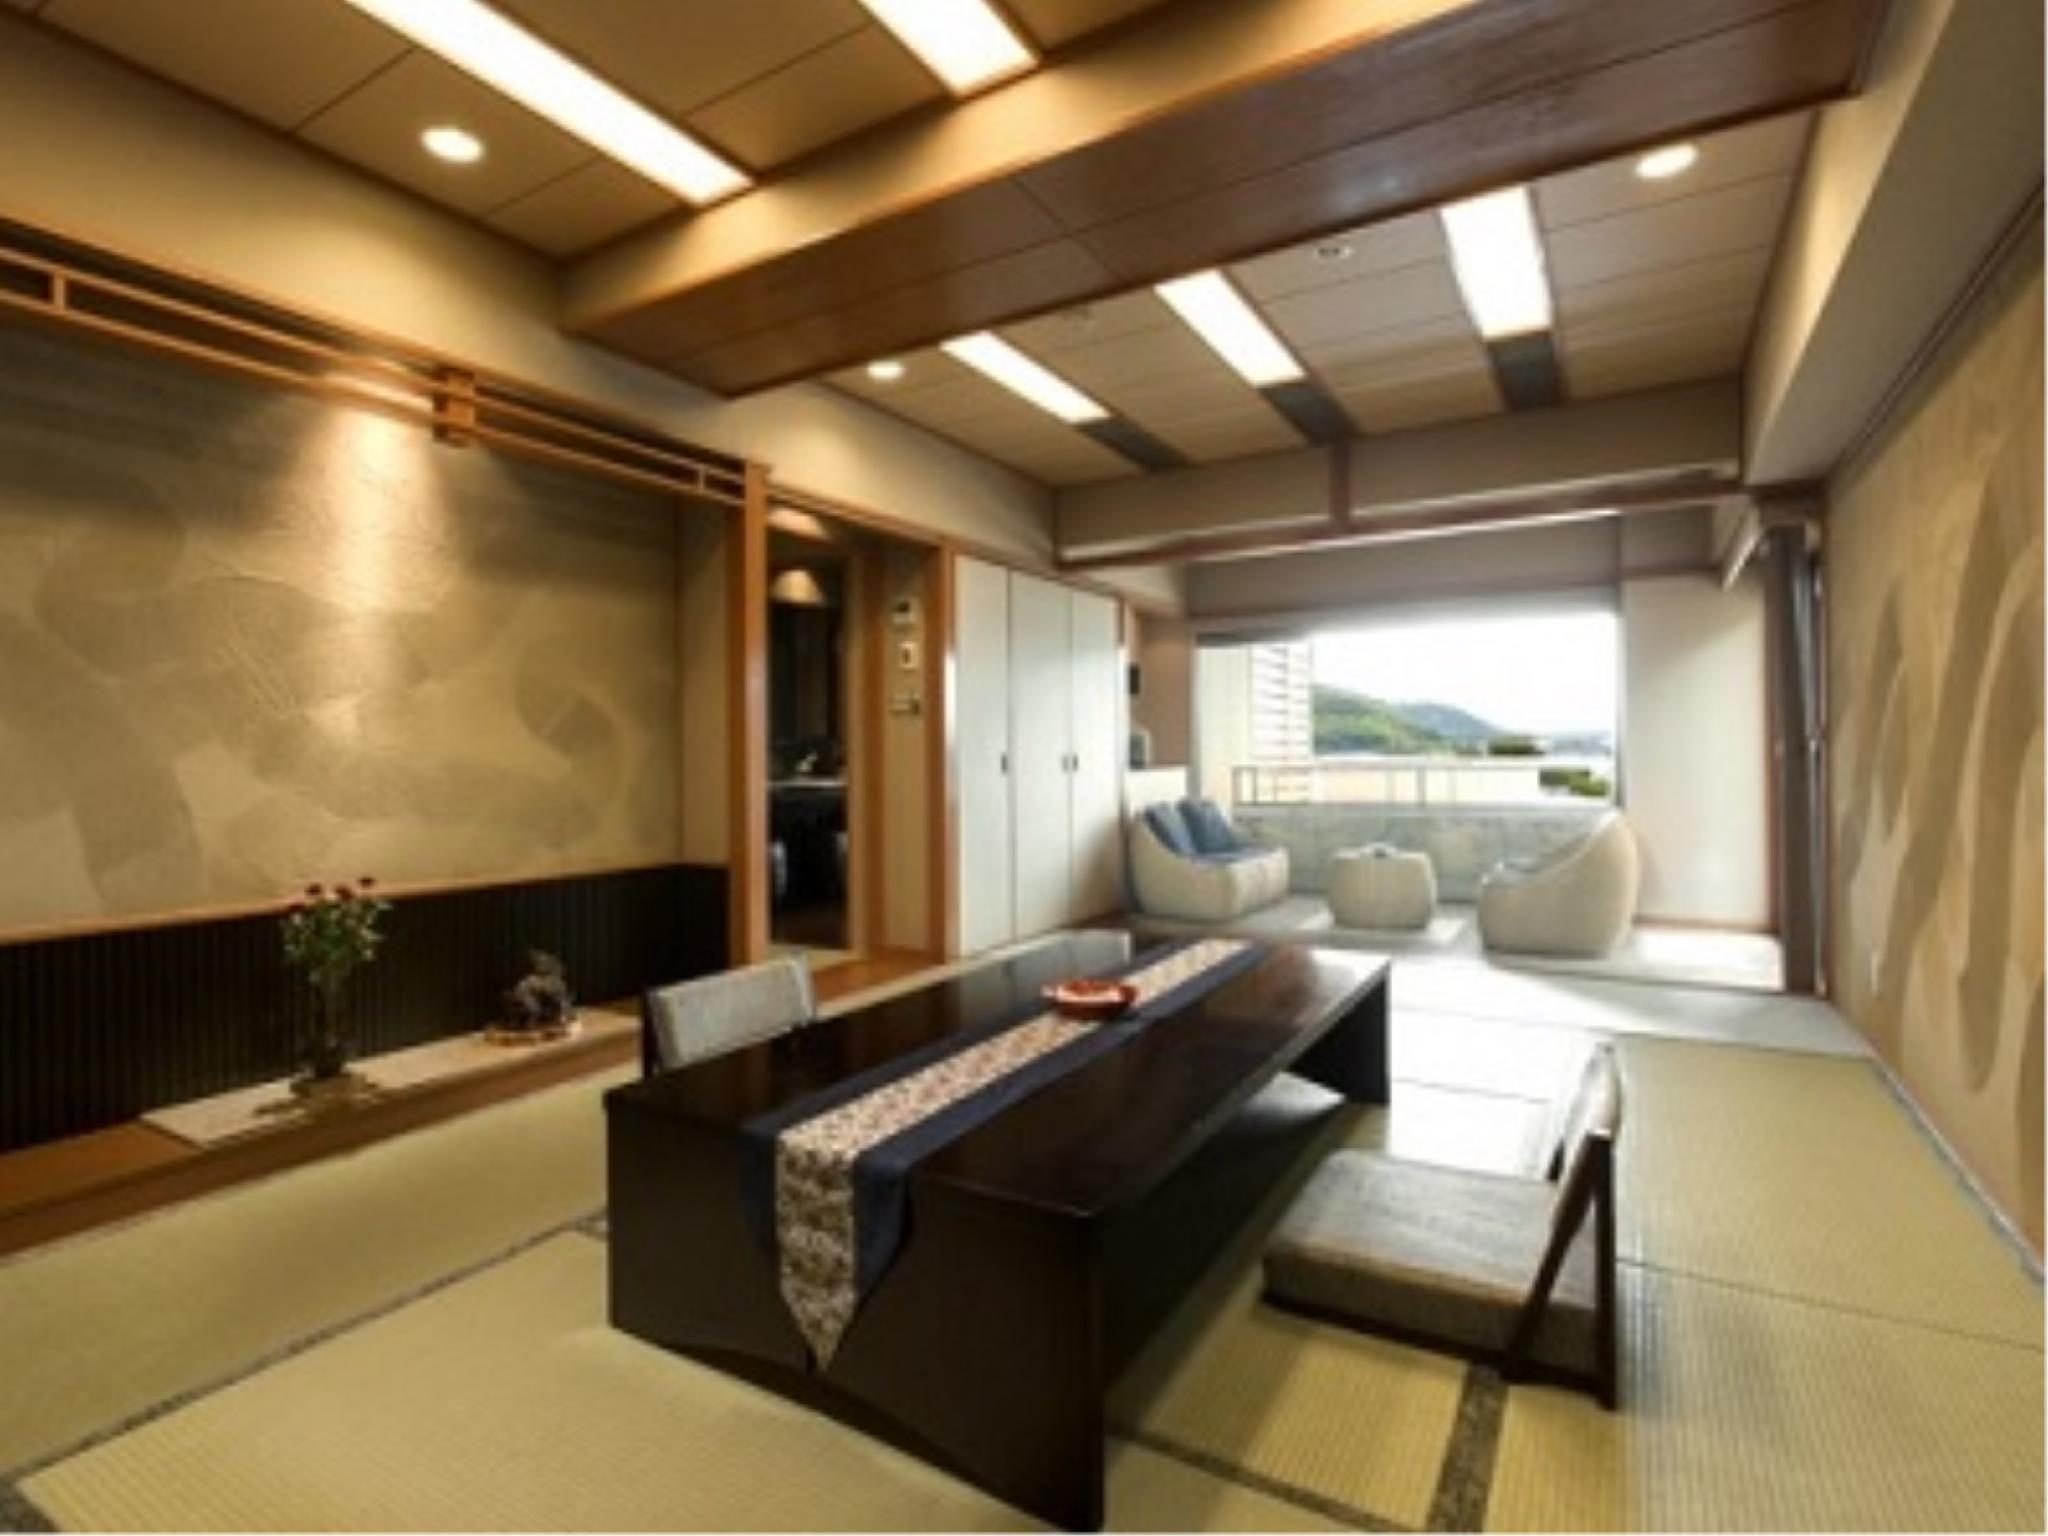 和式房+客厅+露天风吕+足汤 (Japanese-style Room with Living Room, Open-air Bath, and Foot Bath)